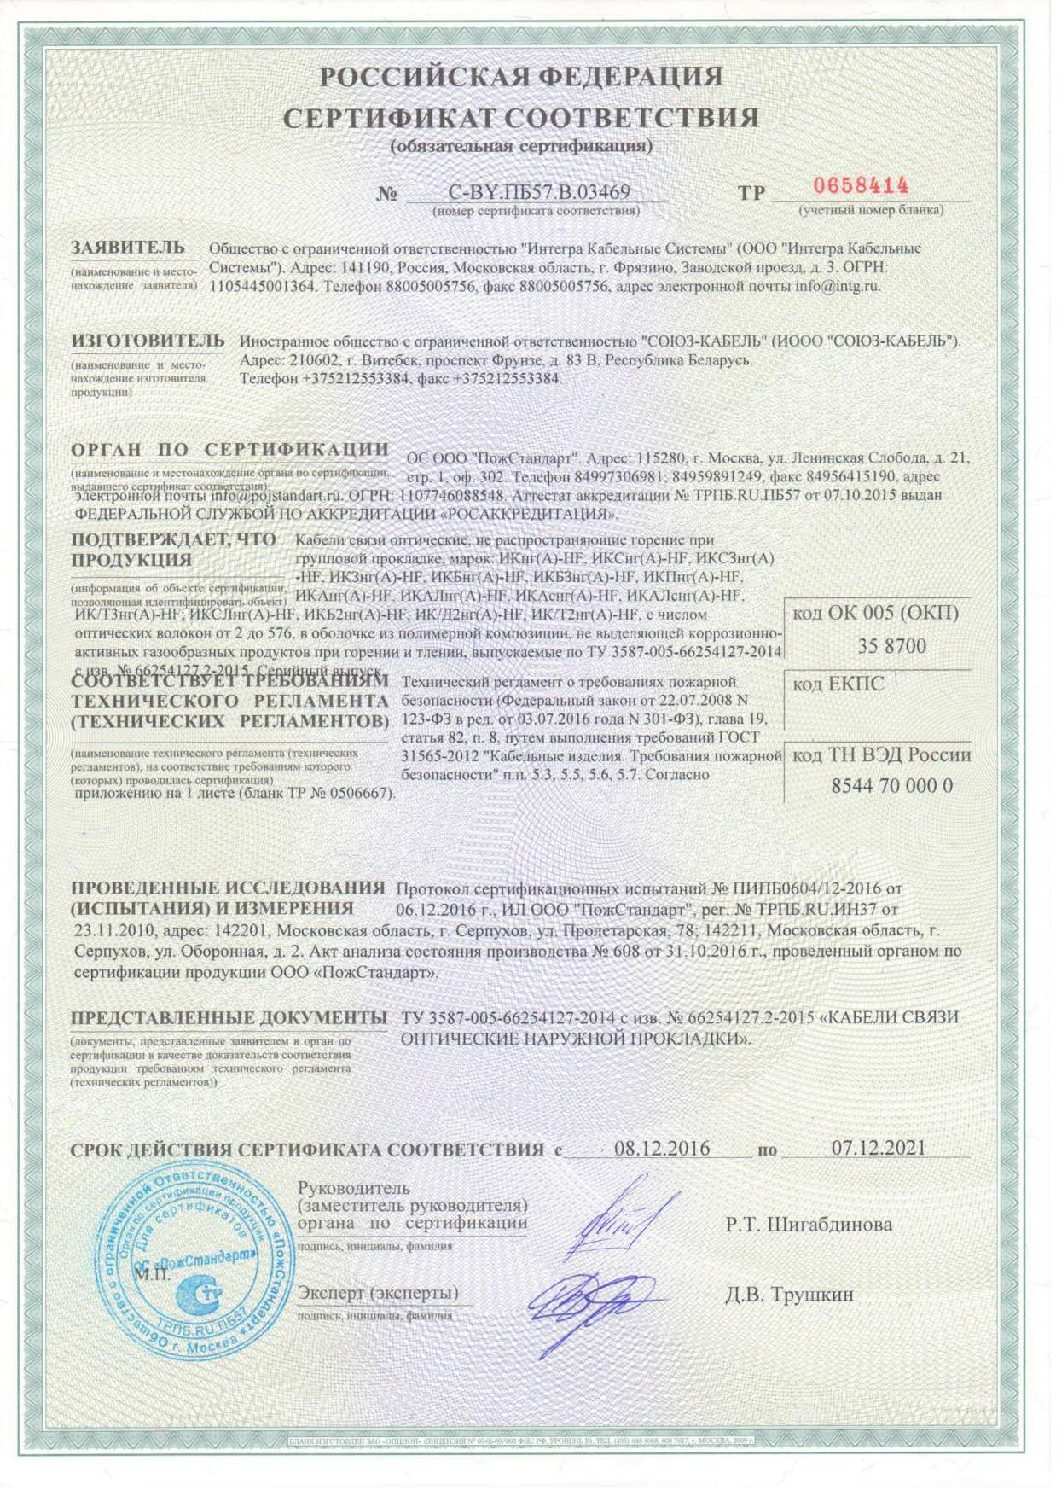 Fire safety certificate (fire resistant halogen-free when bunched cabling)